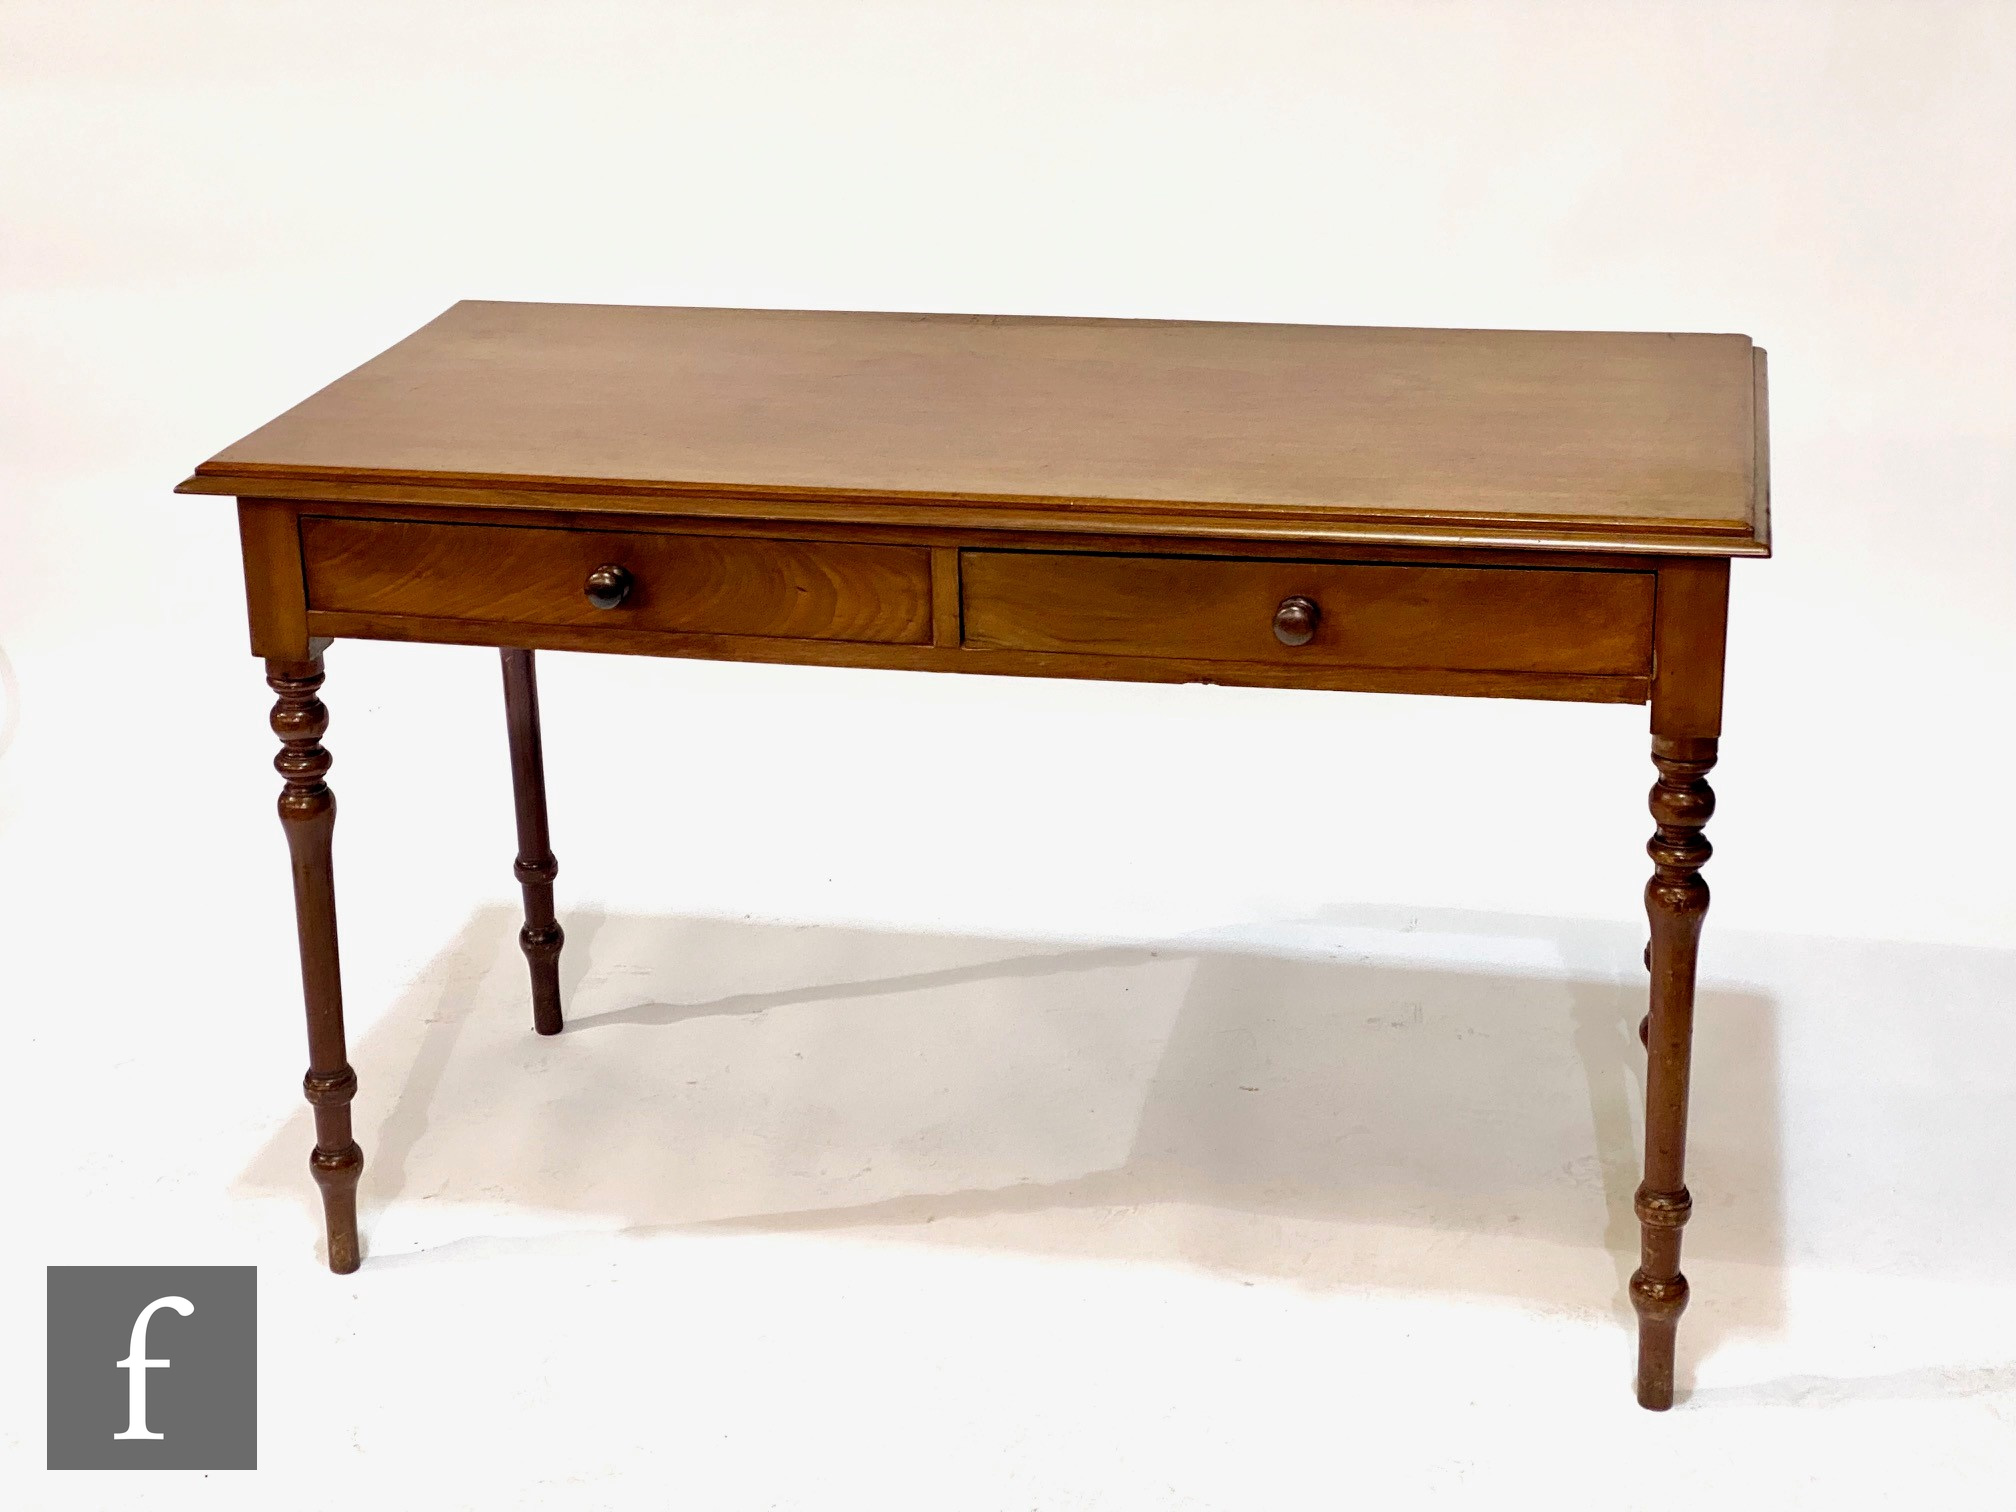 A late 19th to early 20th Century mahogany side table, fitted with two frieze drawers above turned